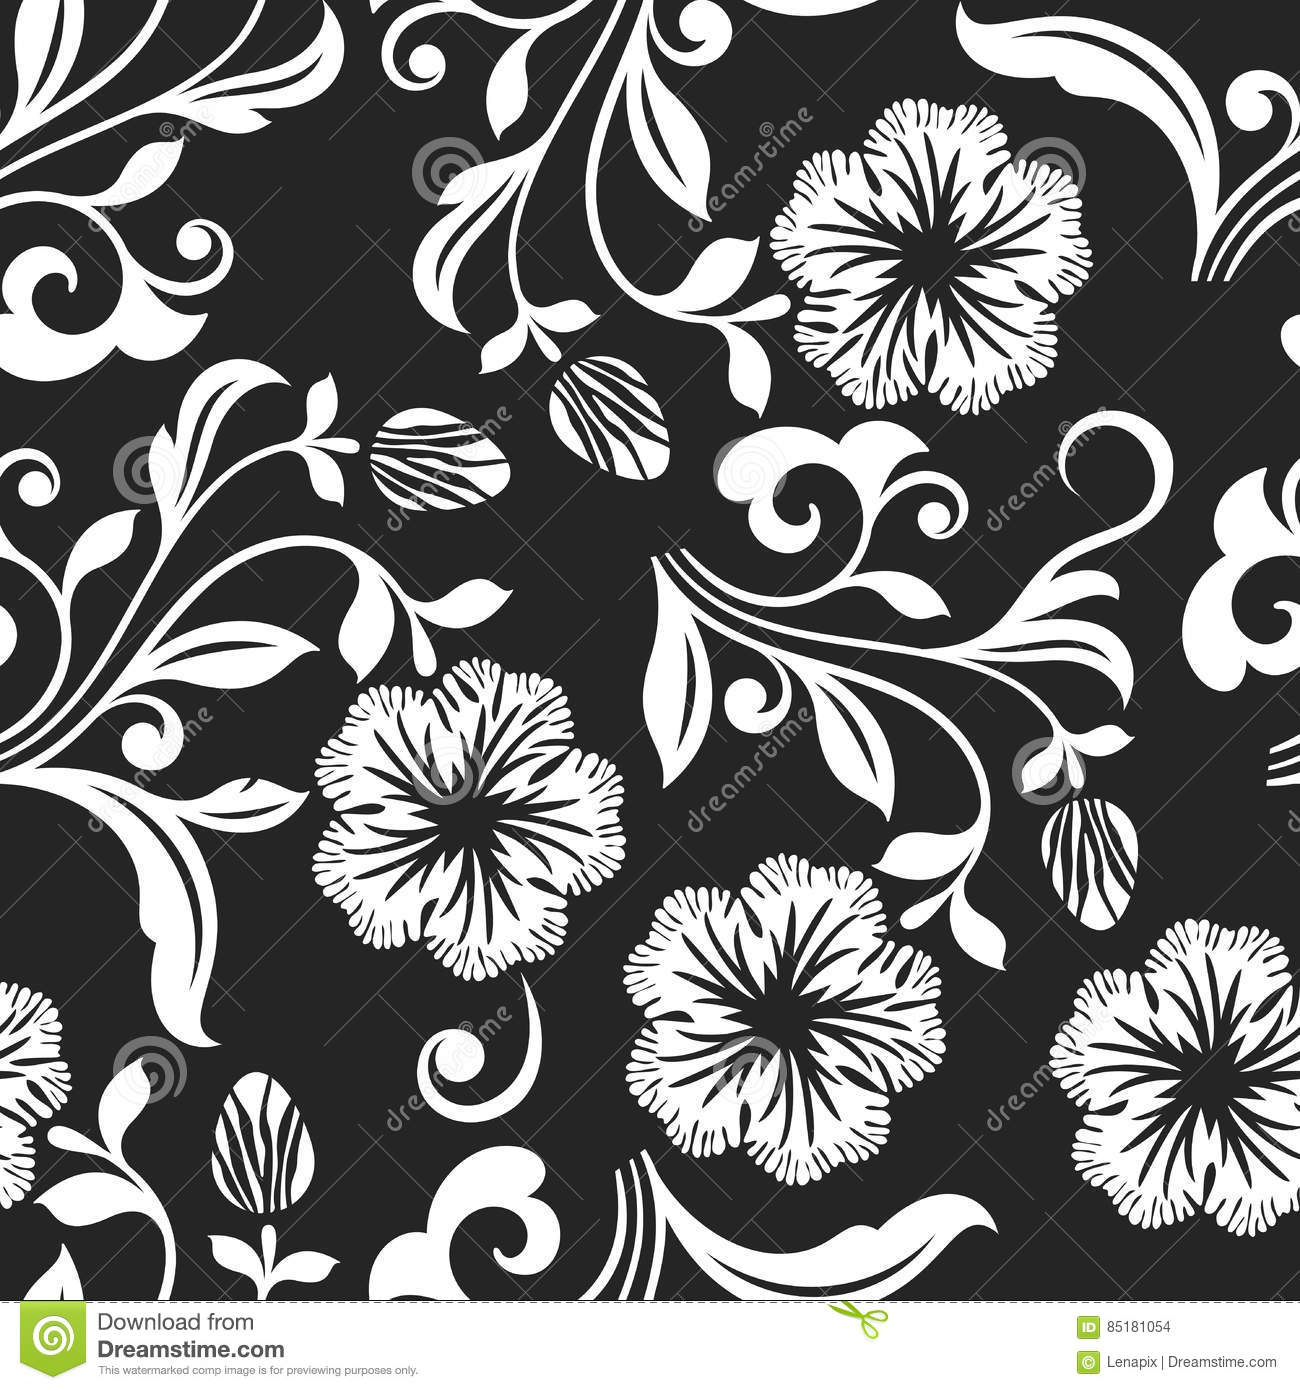 This is a graphic of Punchy Black and White Printable